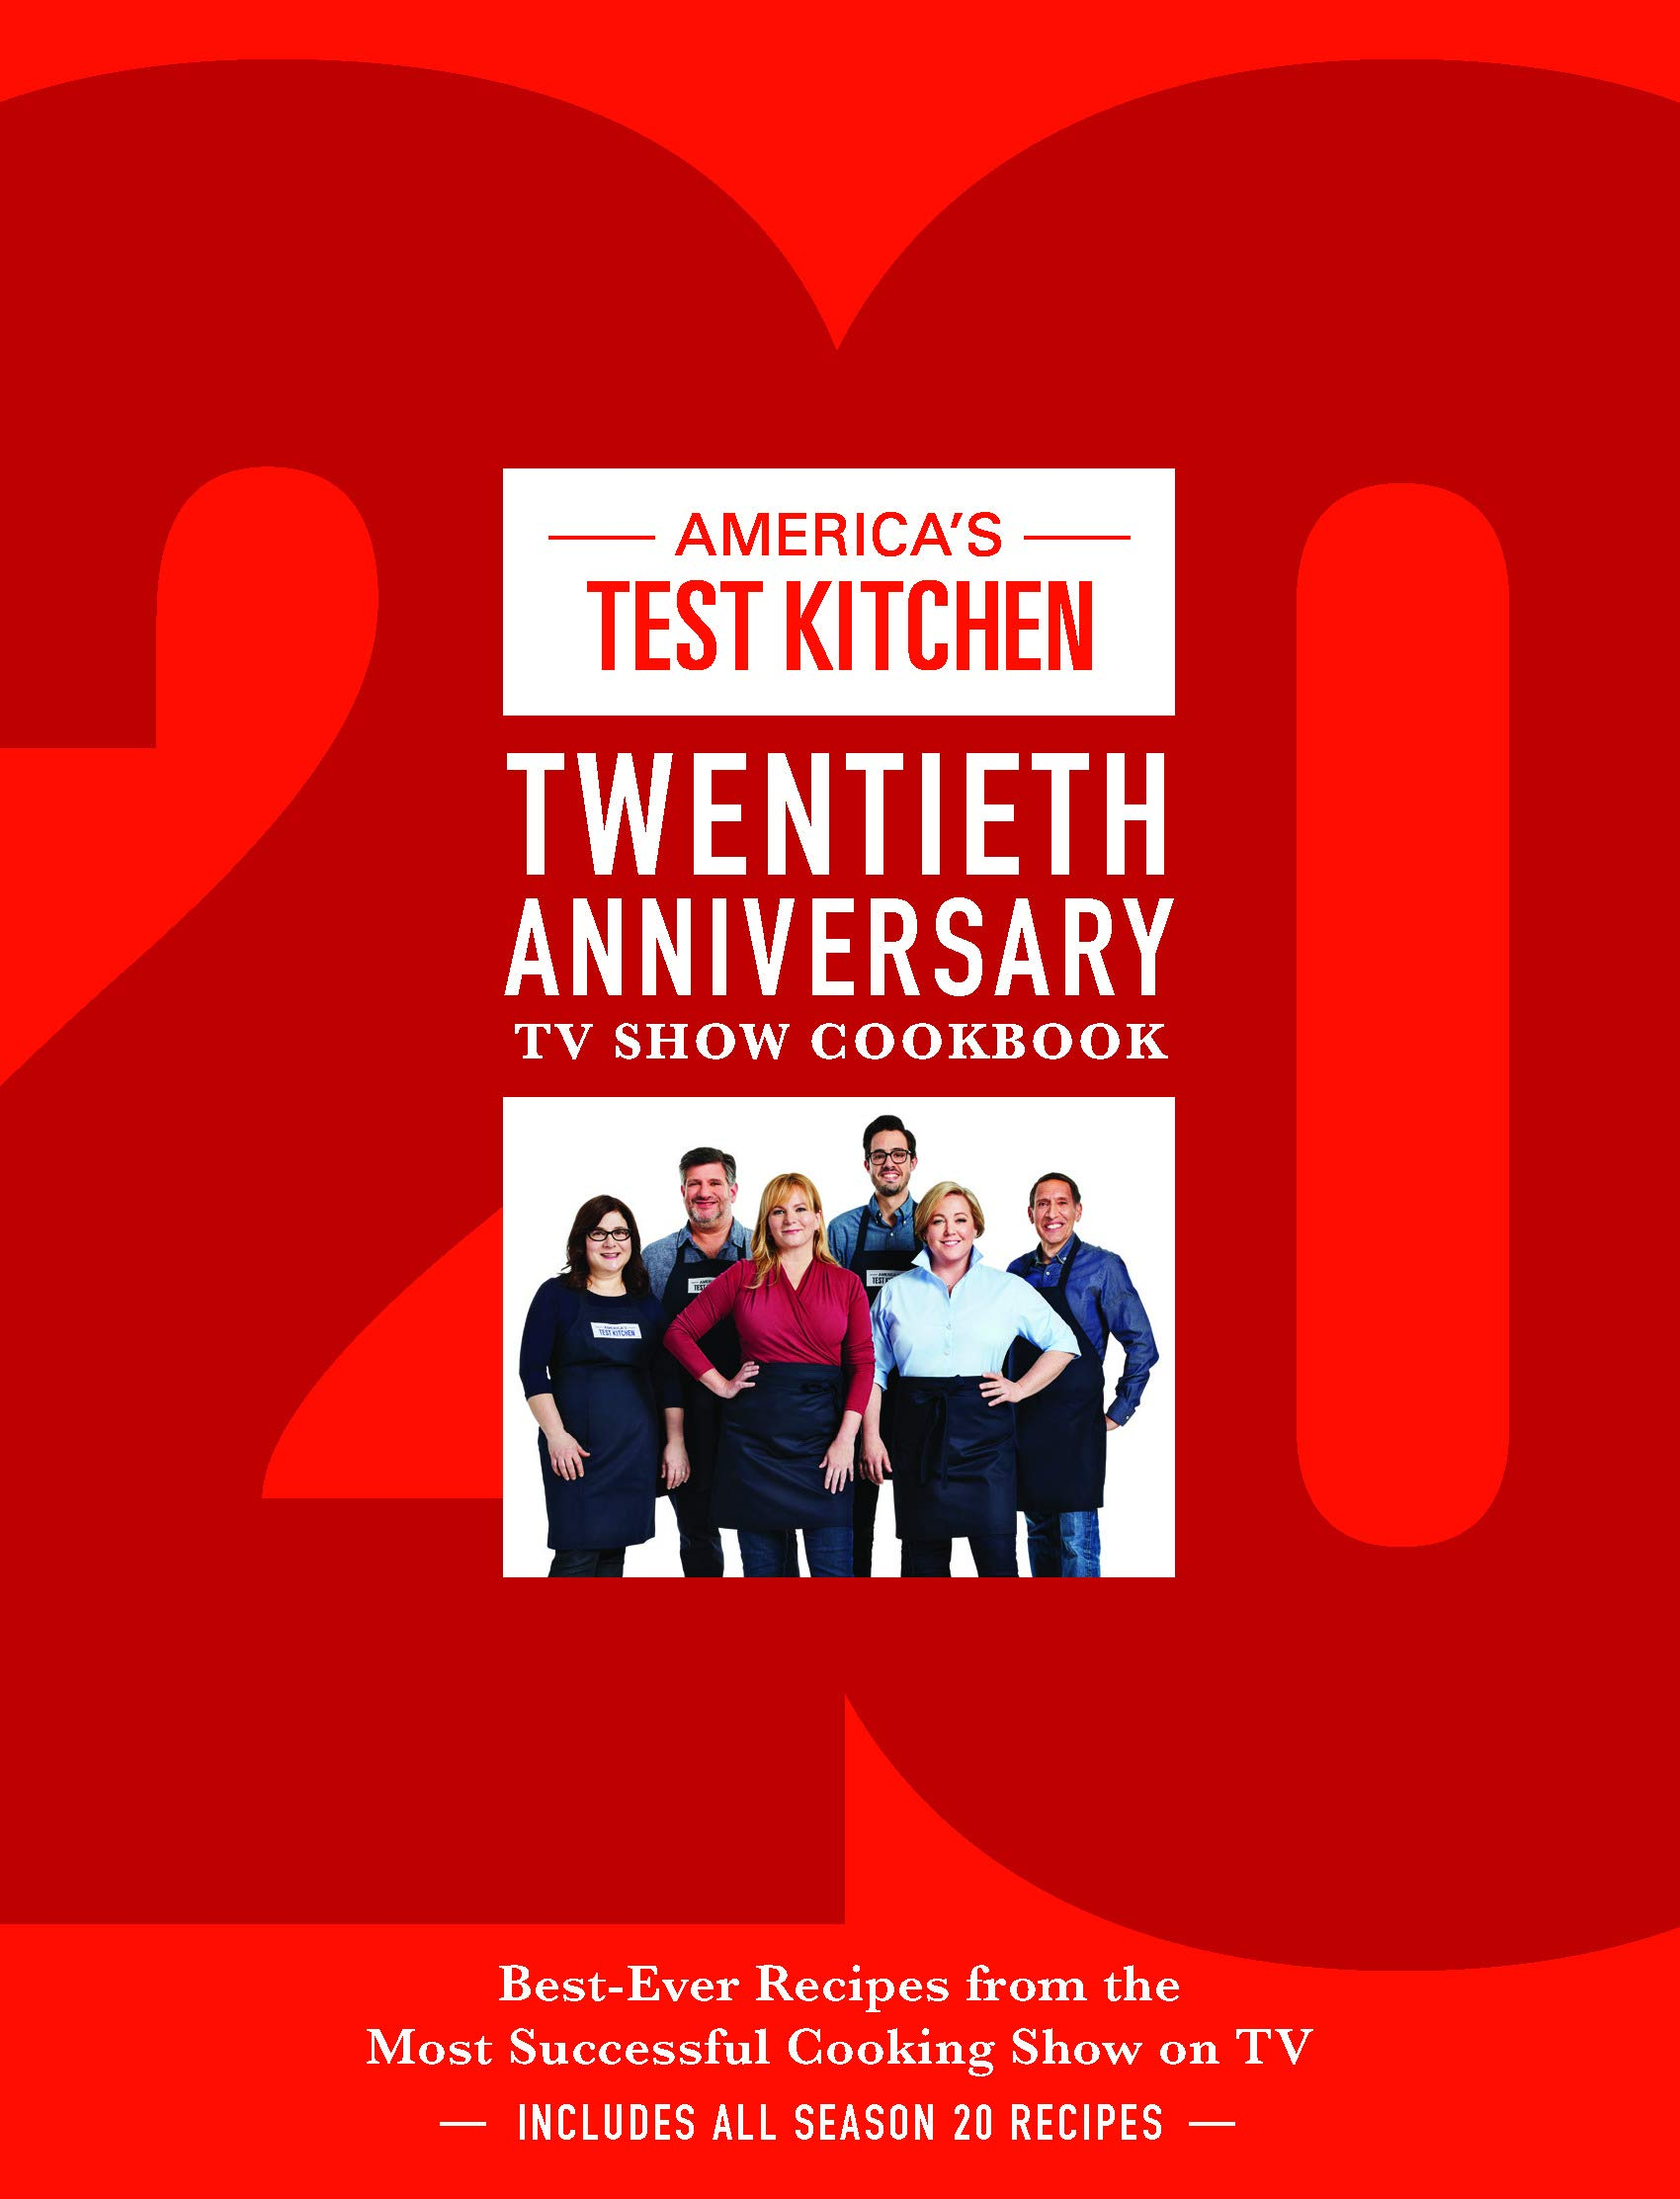 America's Test Kitchen Twentieth Anniversary TV Show Cookbook: Best-Ever Recipes from the Most Successful Cooking Show on TV by America's Test Kitchen